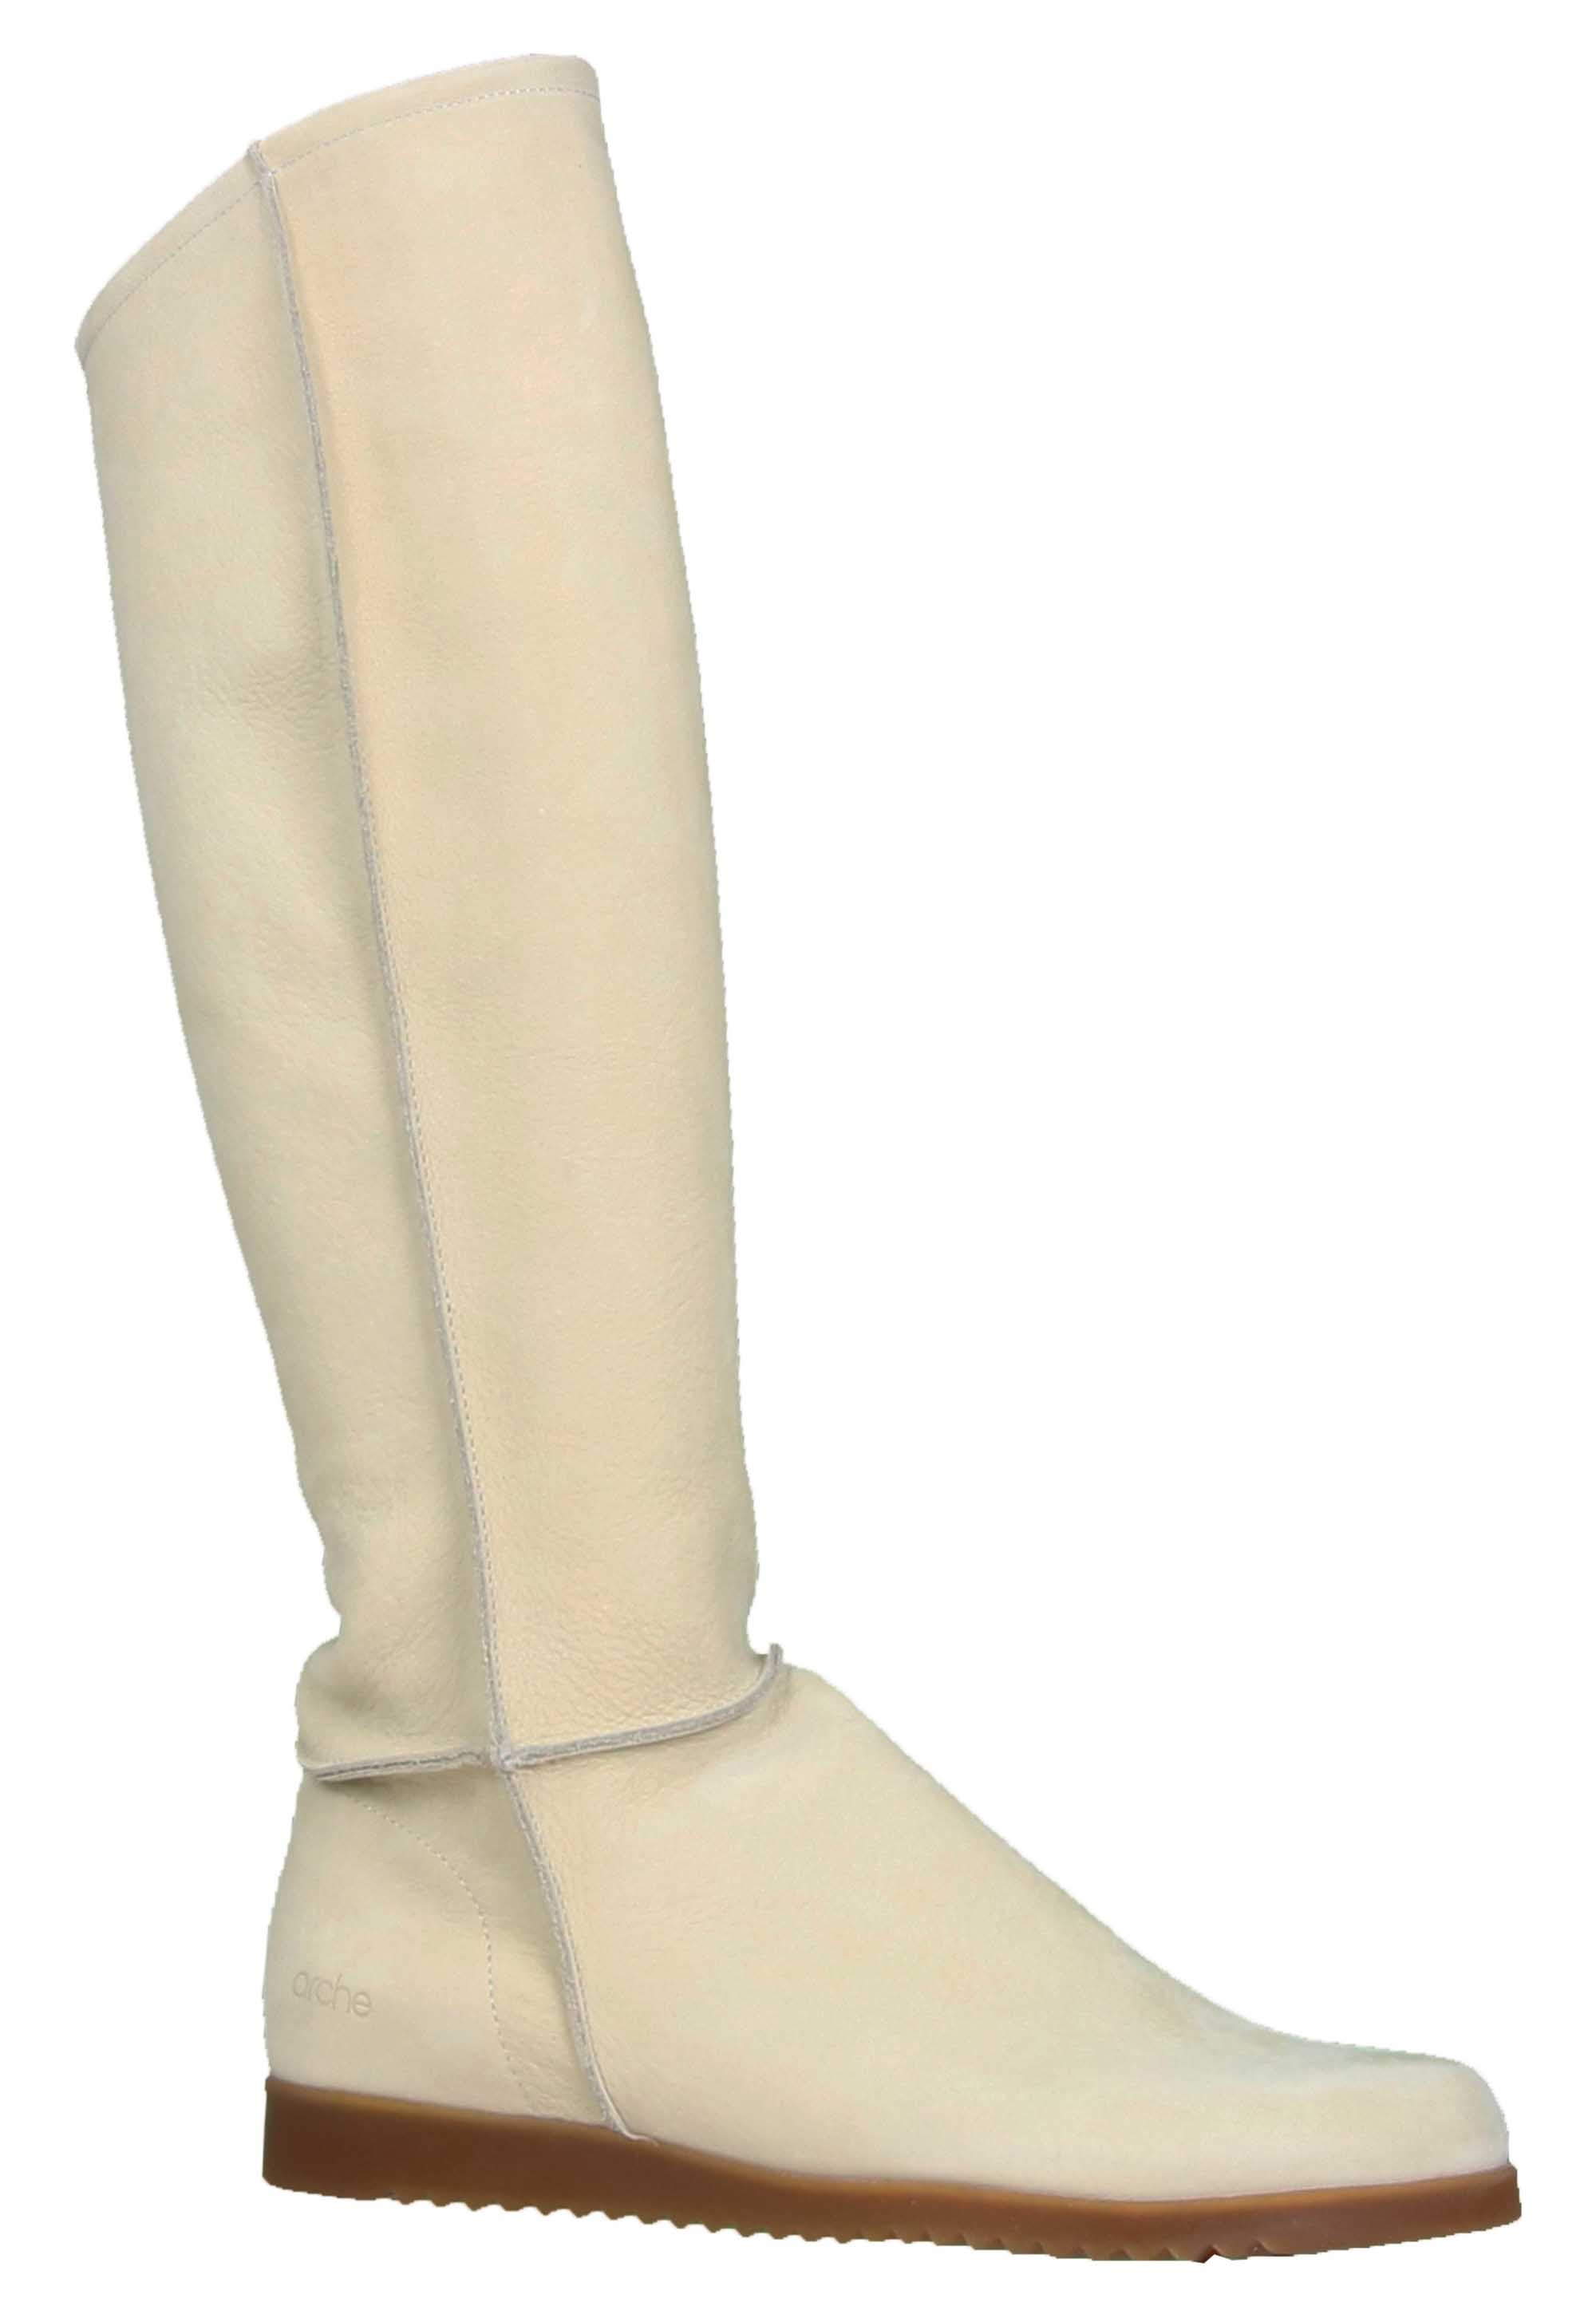 Arche boots BAOWEM Cream White by